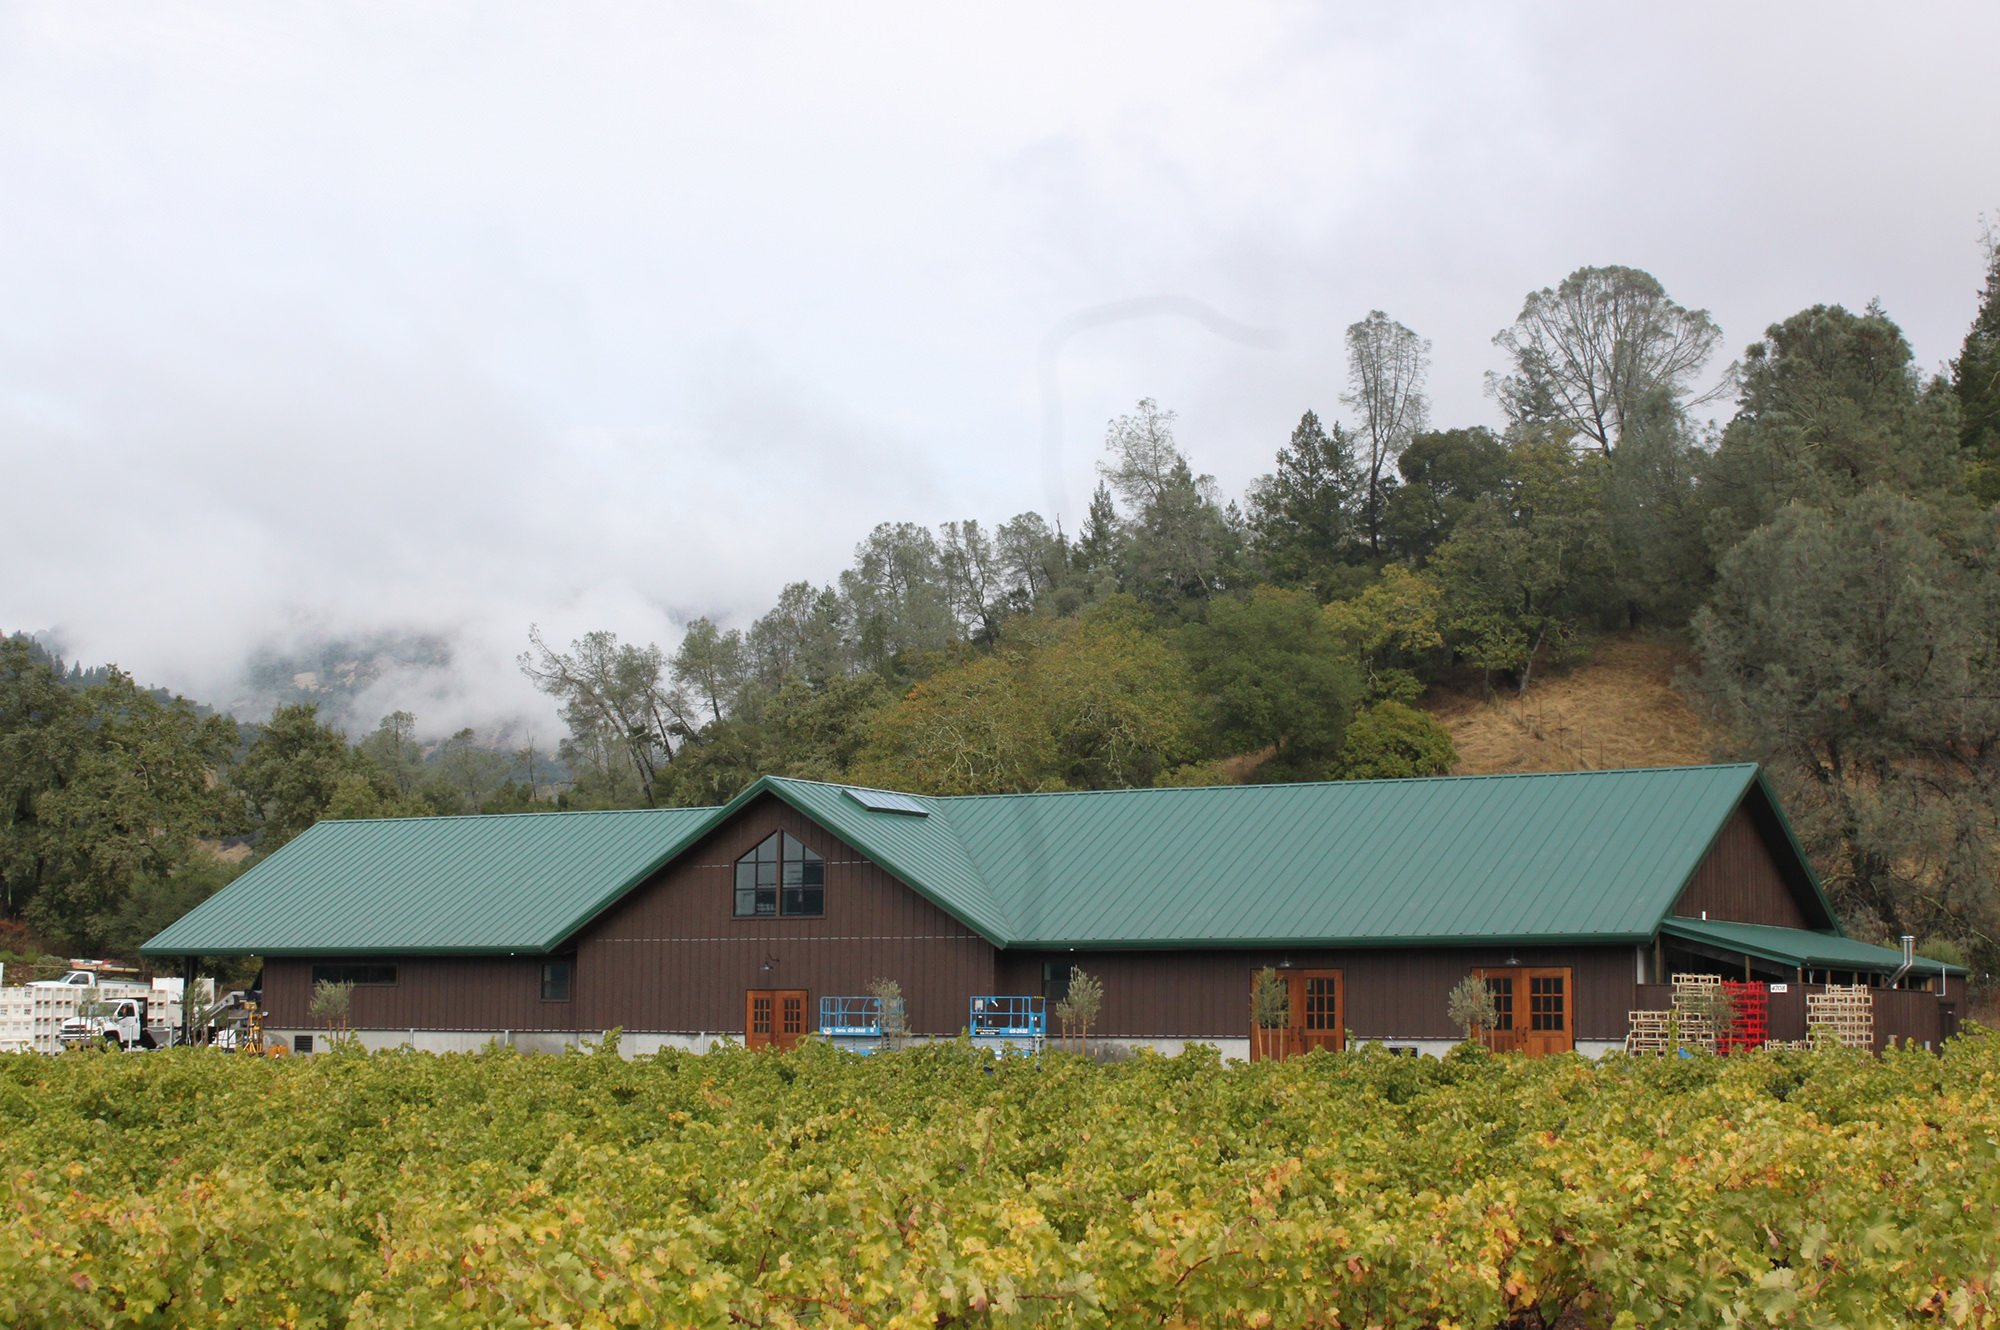 Exterior of Venge Vineyards Winery in Calistoga